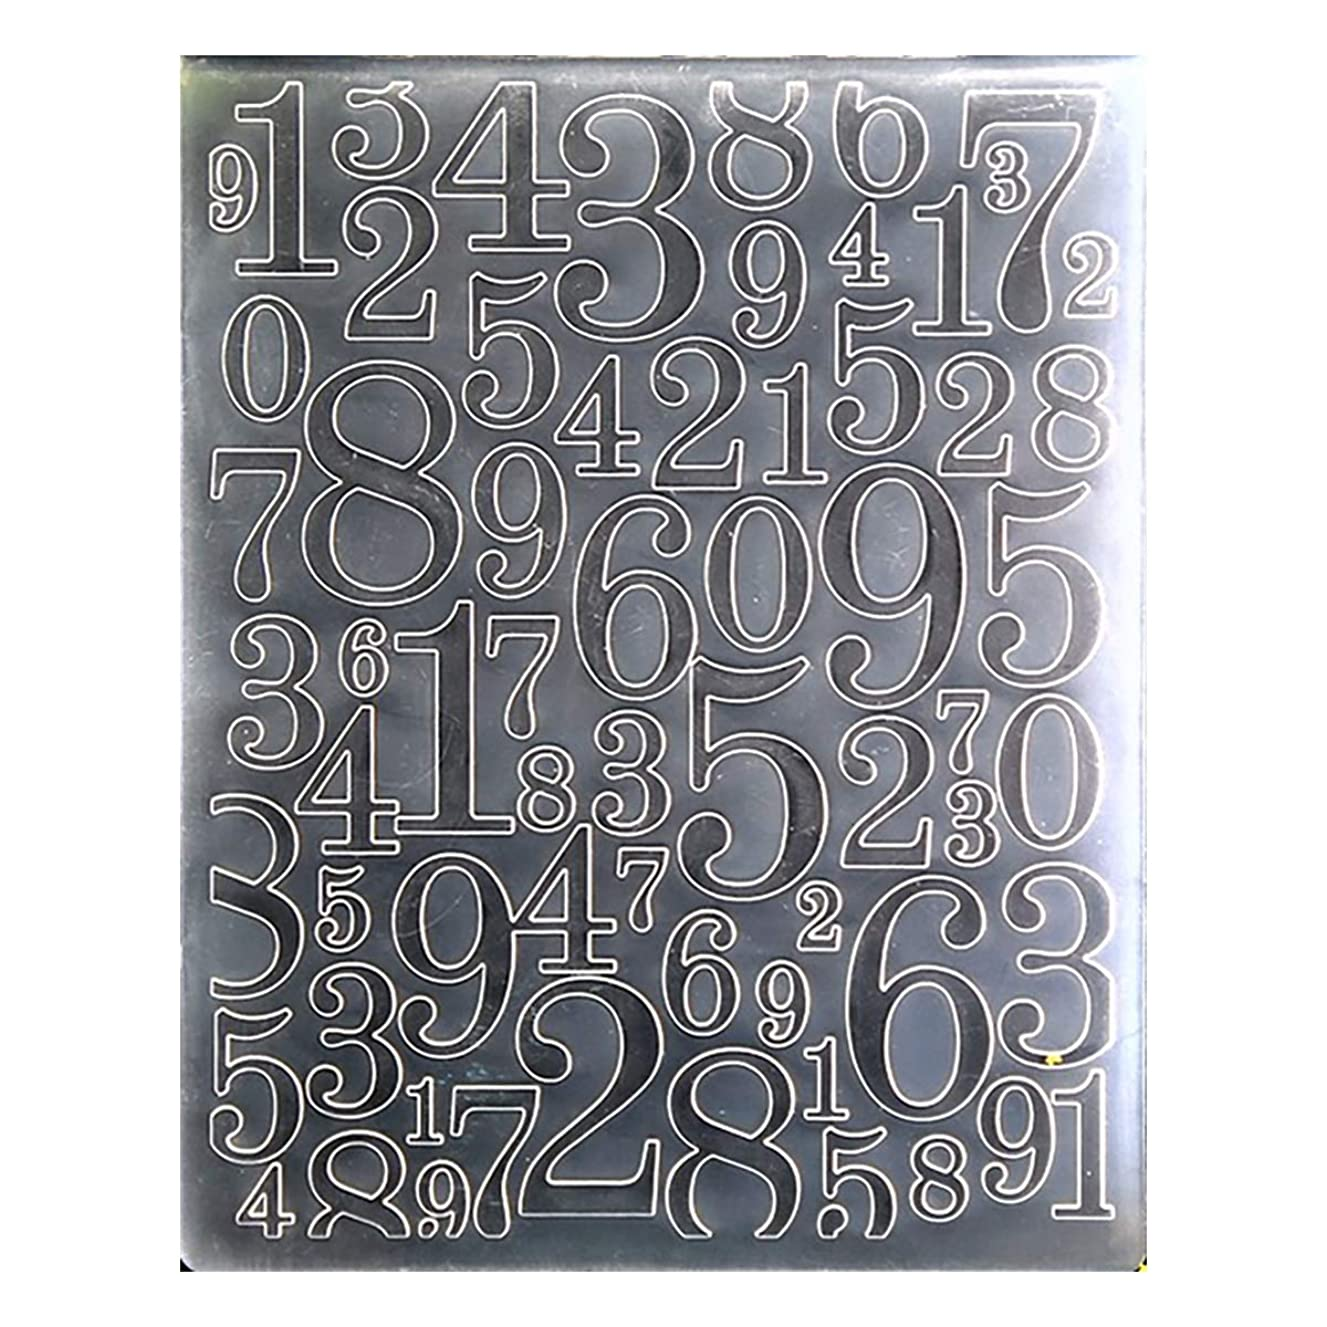 Kwan Crafts Numbers 0-9 Plastic Embossing Folders for Card Making Scrapbooking and Other Paper Crafts, 12.1x15.2cm